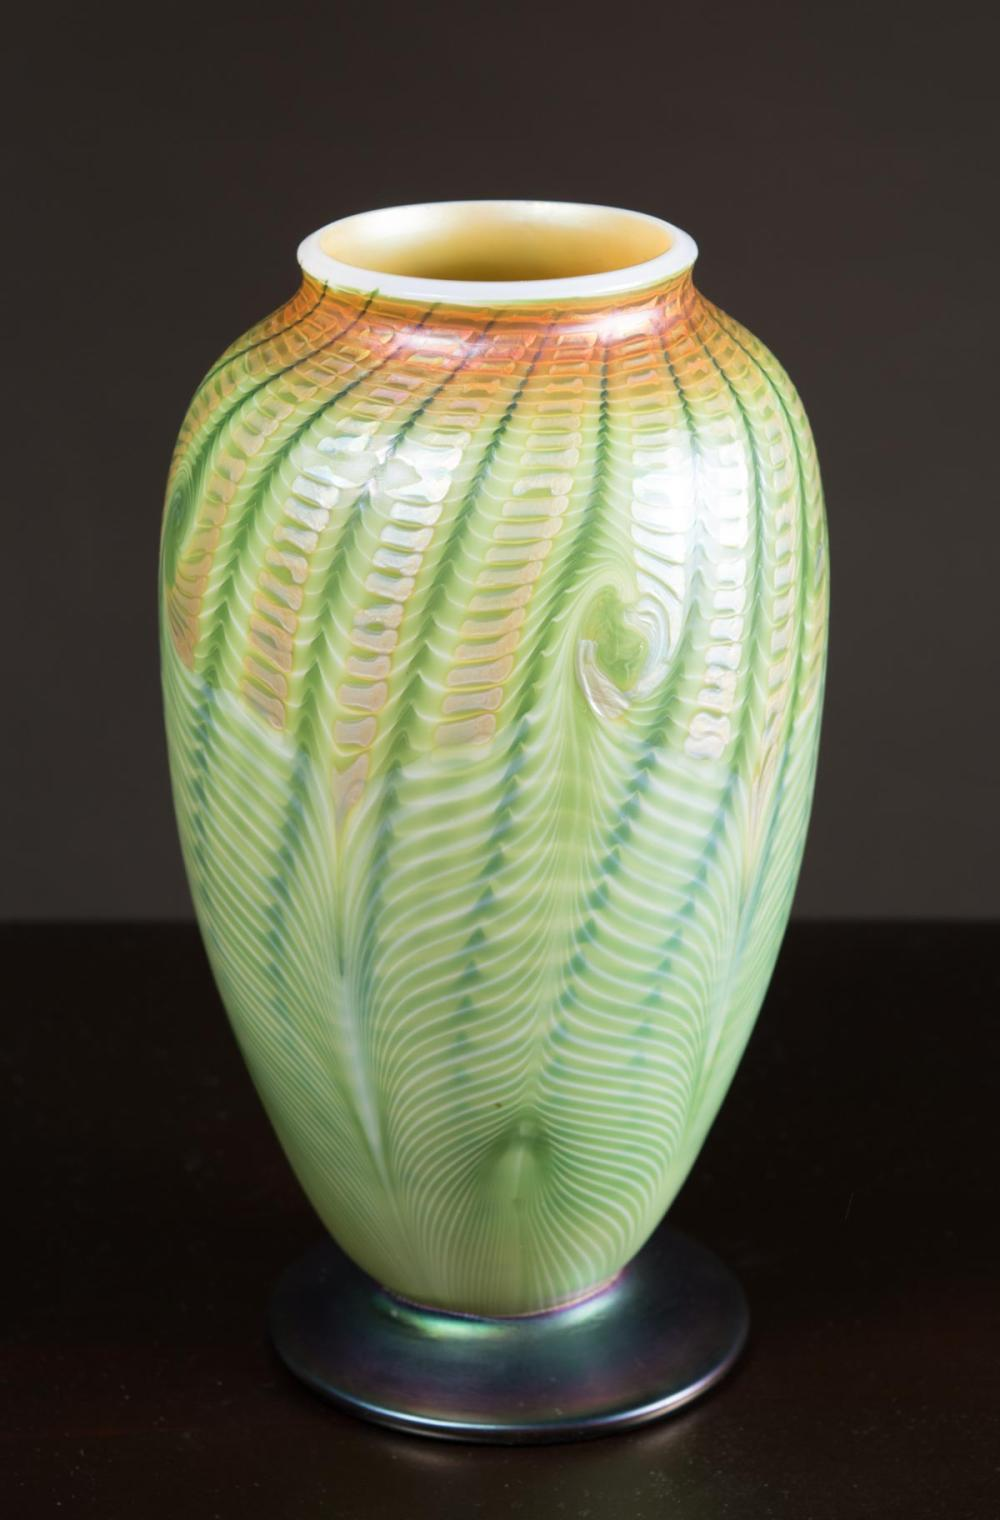 L.C. TIFFANY FAVRILE ART GLASS FOOTED VASE, 1916,